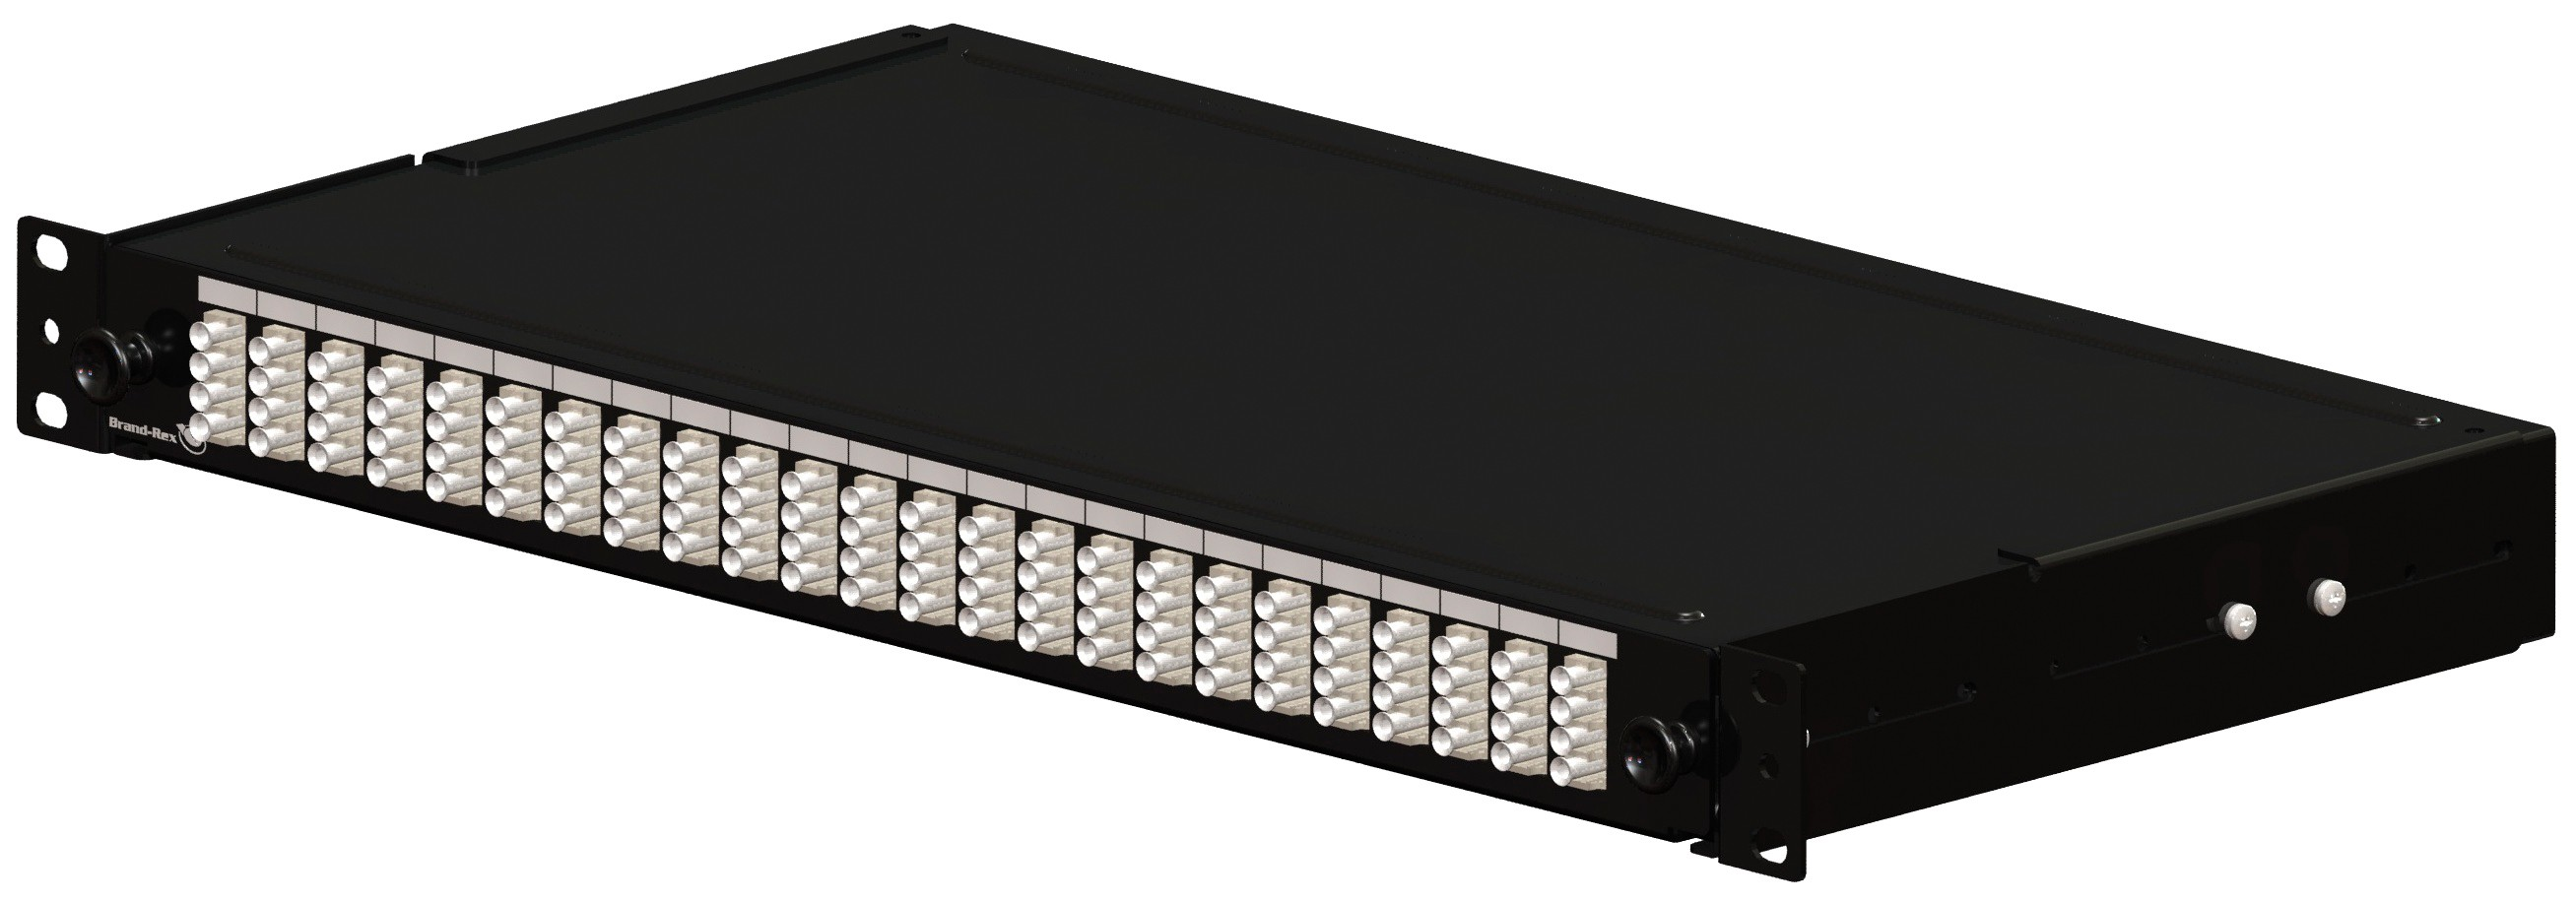 Brand-Rex Optical Panel loaded with 16 ST Singlemode adapters